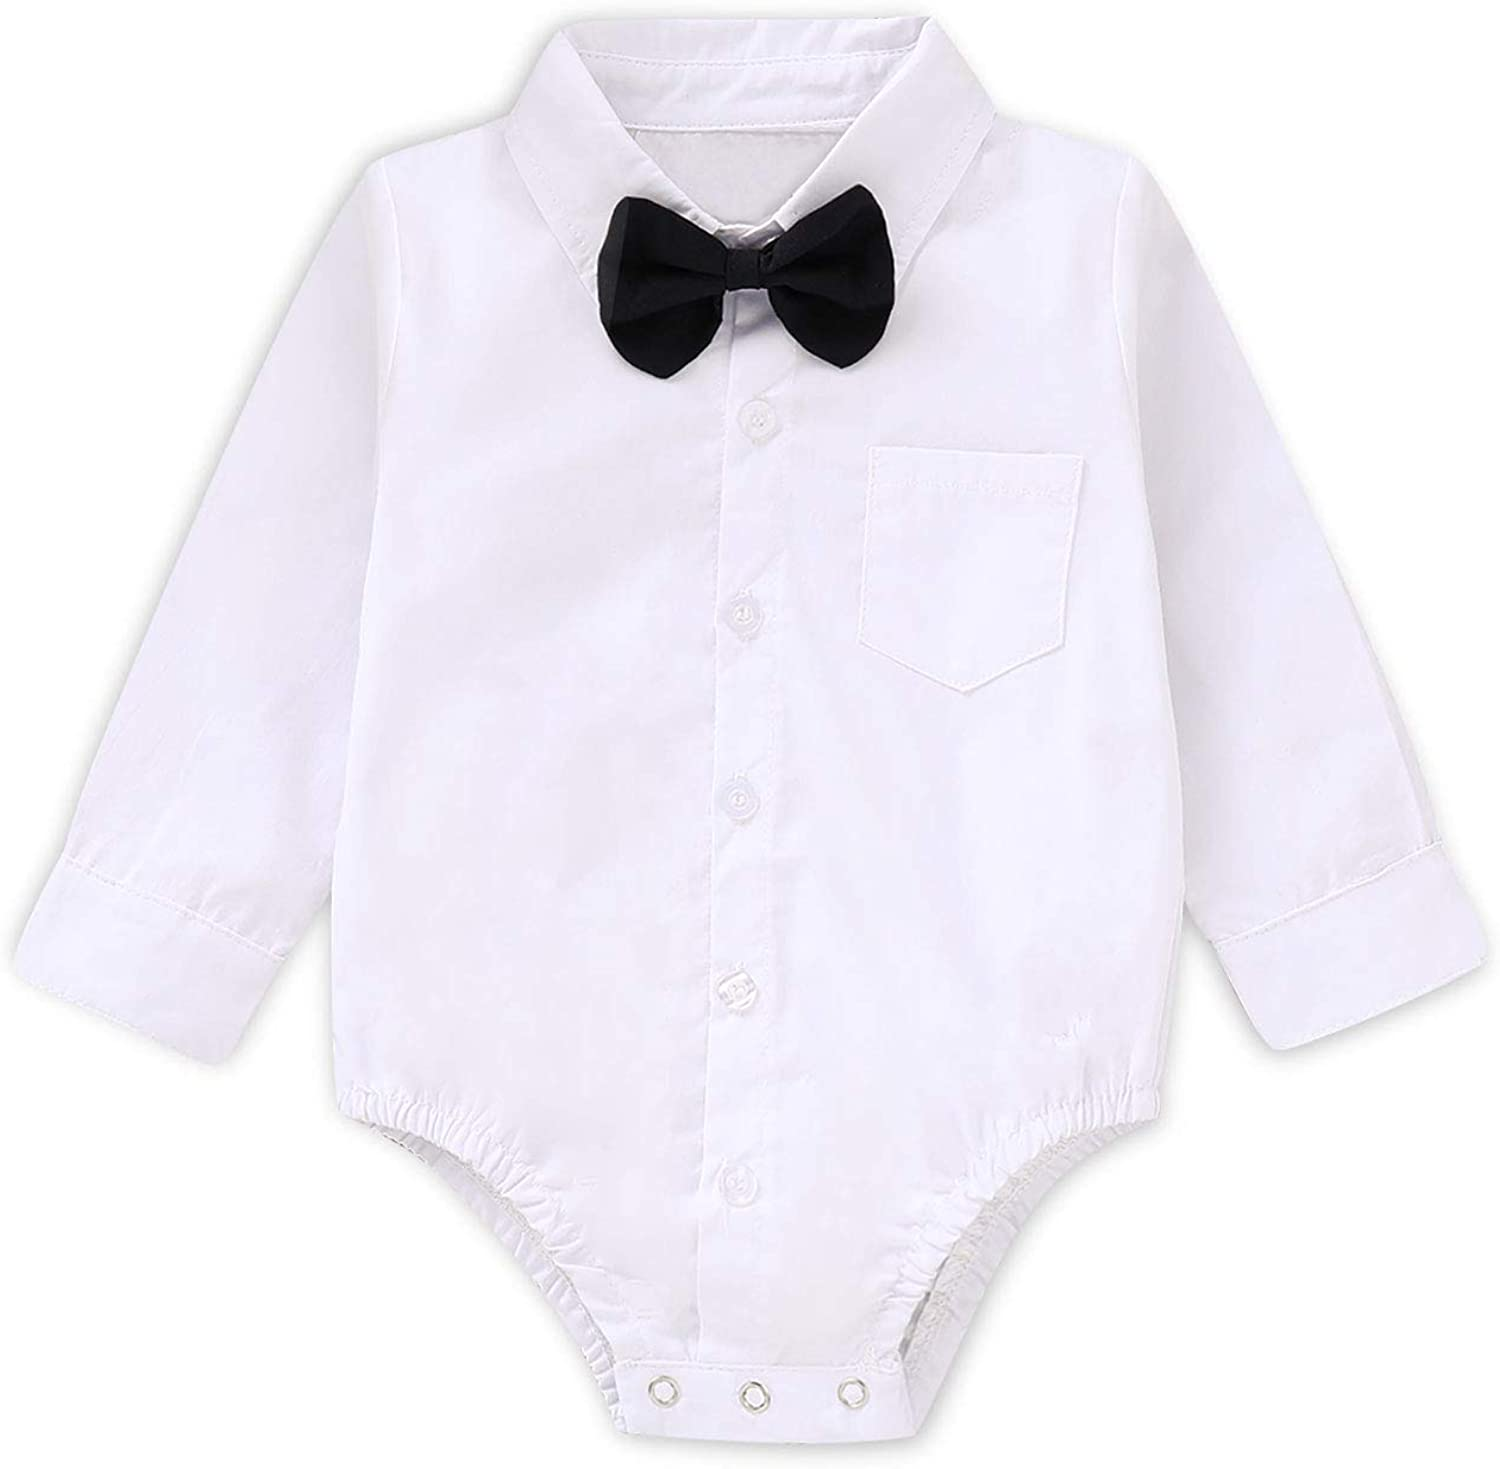 SOBOWO Baby Boys Dress Shirt Bodysuit Infant Gentleman Long Sleeve Formal Romper Jumpsuit Wedding Party Outfits Pack of 2